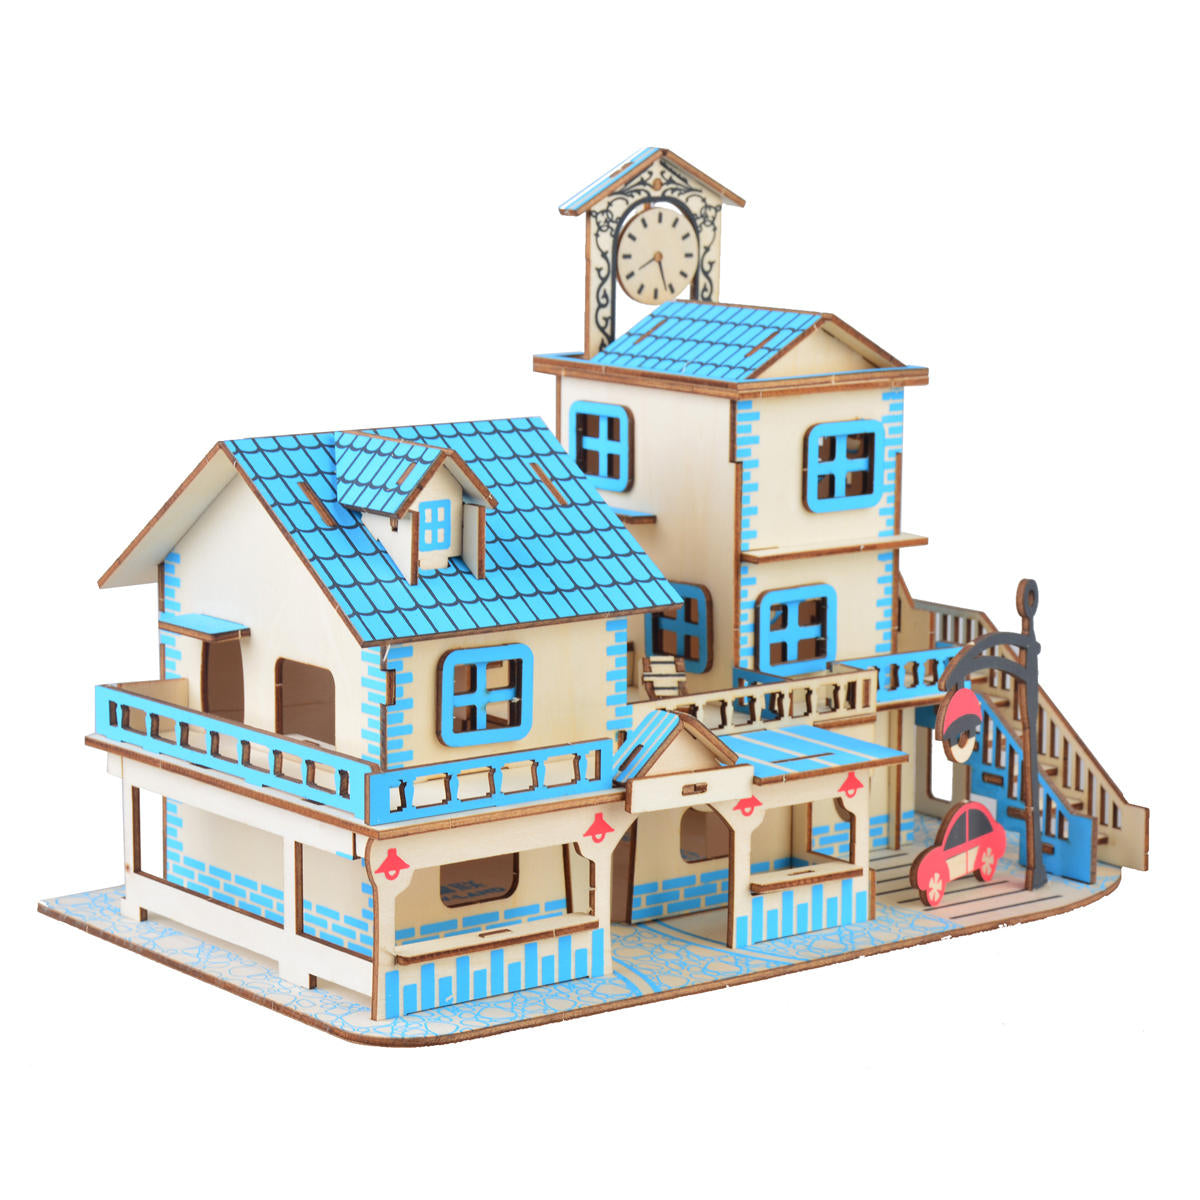 3D Woodcraft Charming Aegean Sea Kit - The Tinkertown